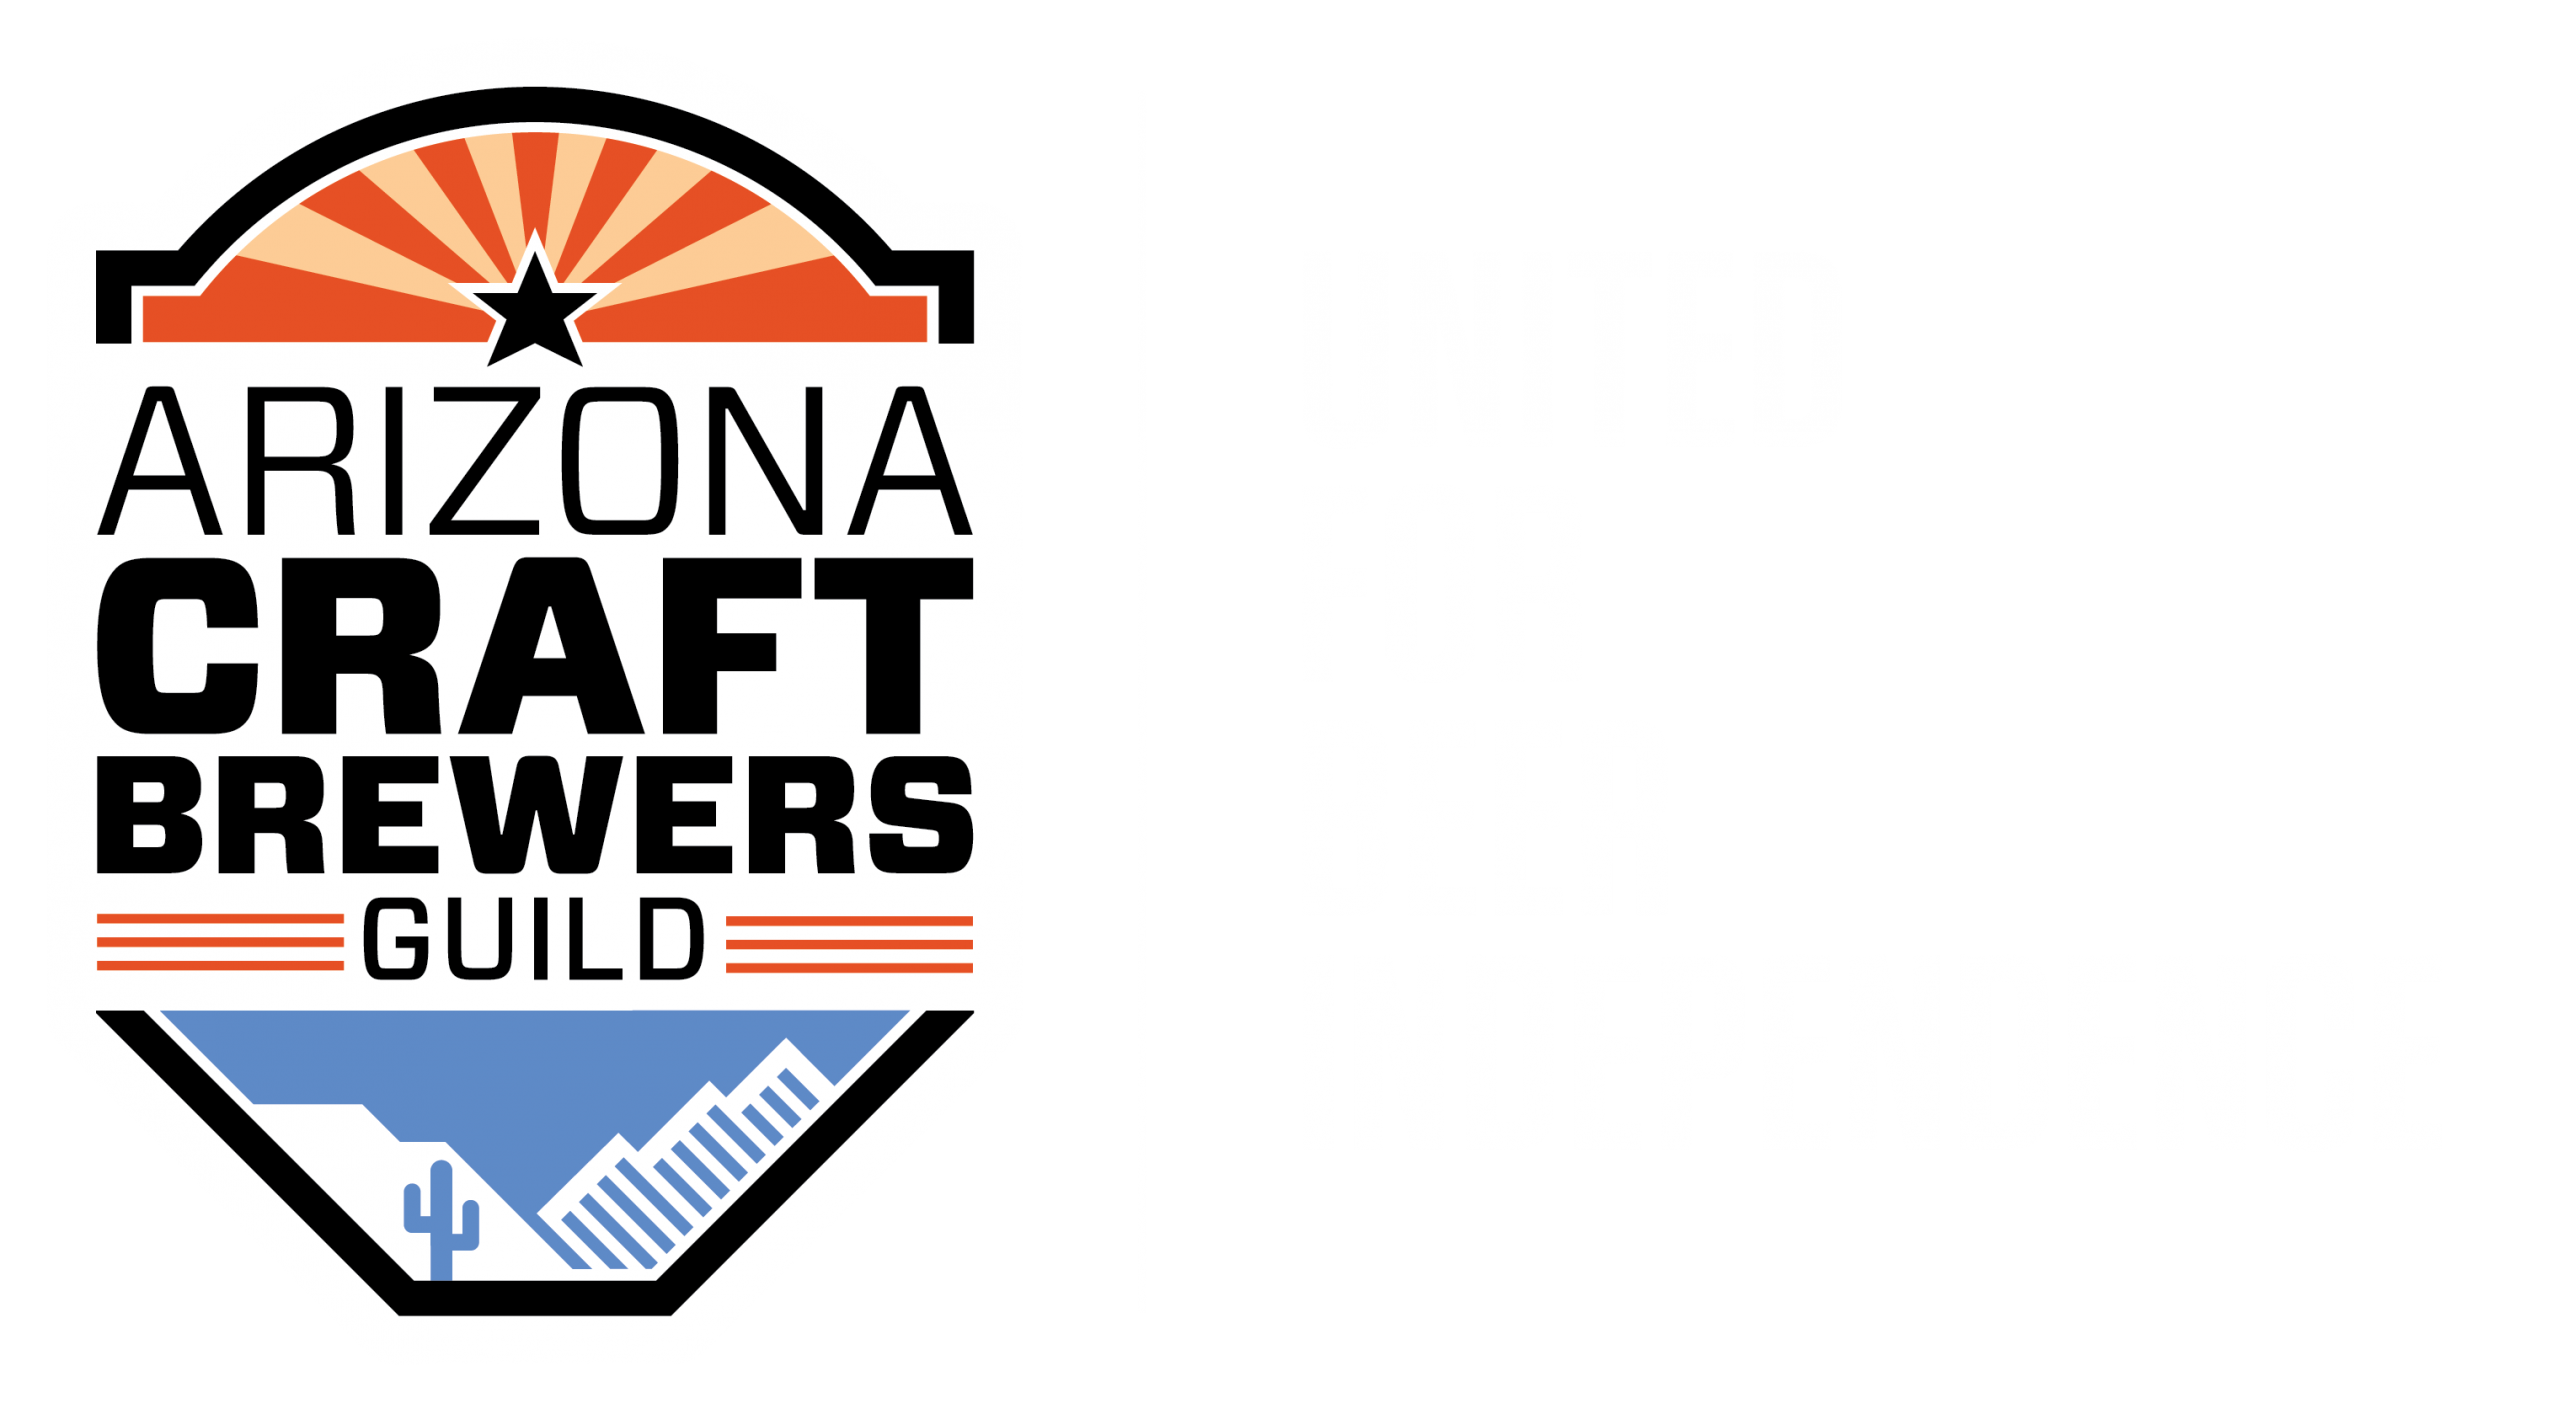 First Community Bank | Arizona Craft Brewers Guild